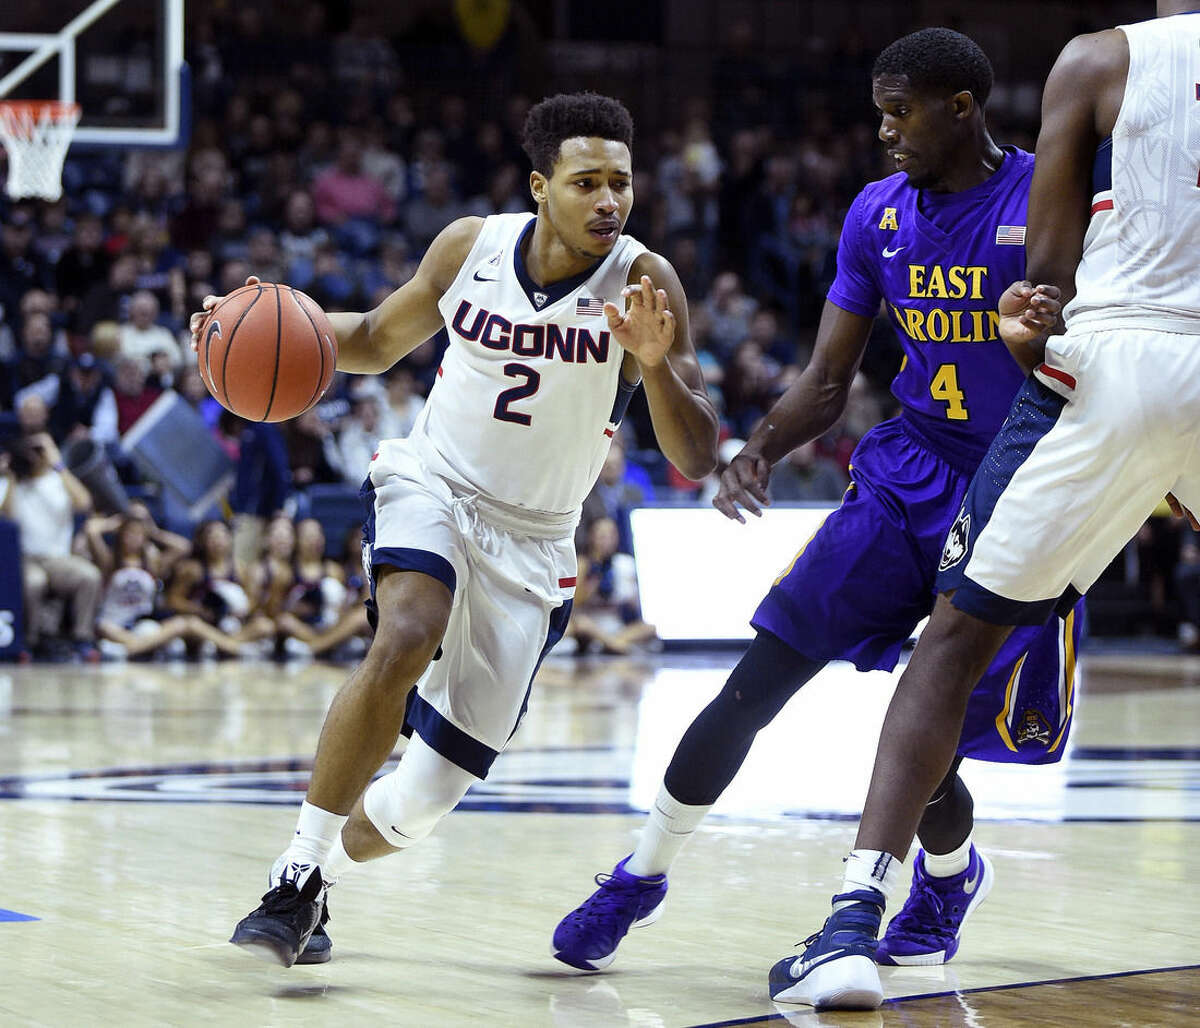 Connecticut's Jalen Adams (2) drives past East Carolina's Prince Williams (4) during the first half of an NCAA college basketball game in Storrs, Conn., on Sunday, Feb. 7, 2016. (AP Photo/Fred Beckham)